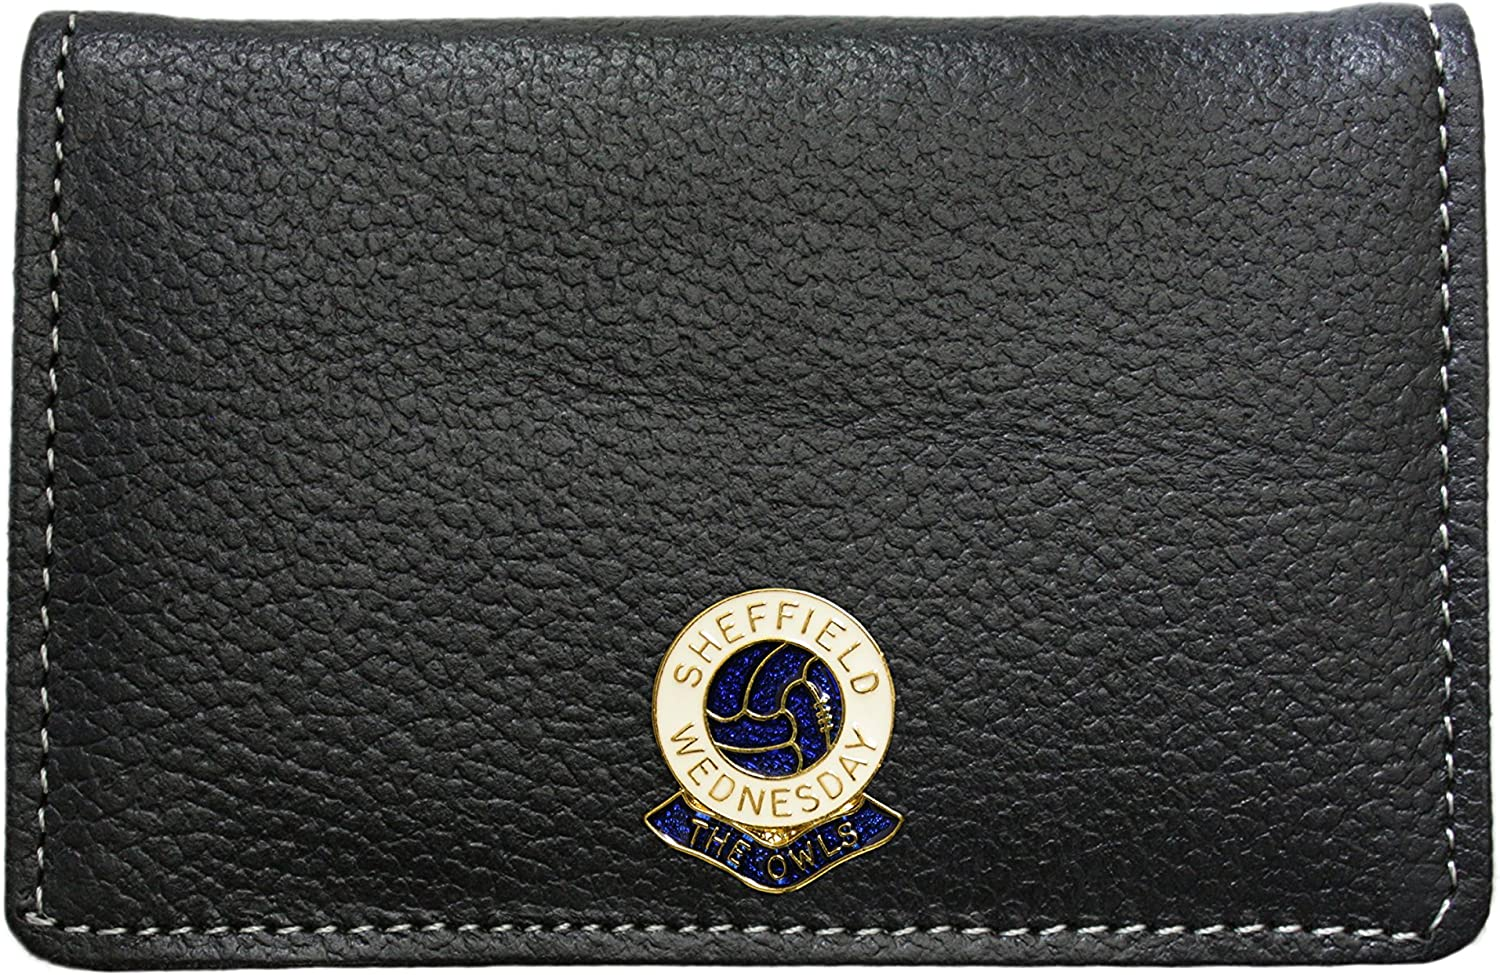 Sheffield Wednesday football club leather card holder wallet